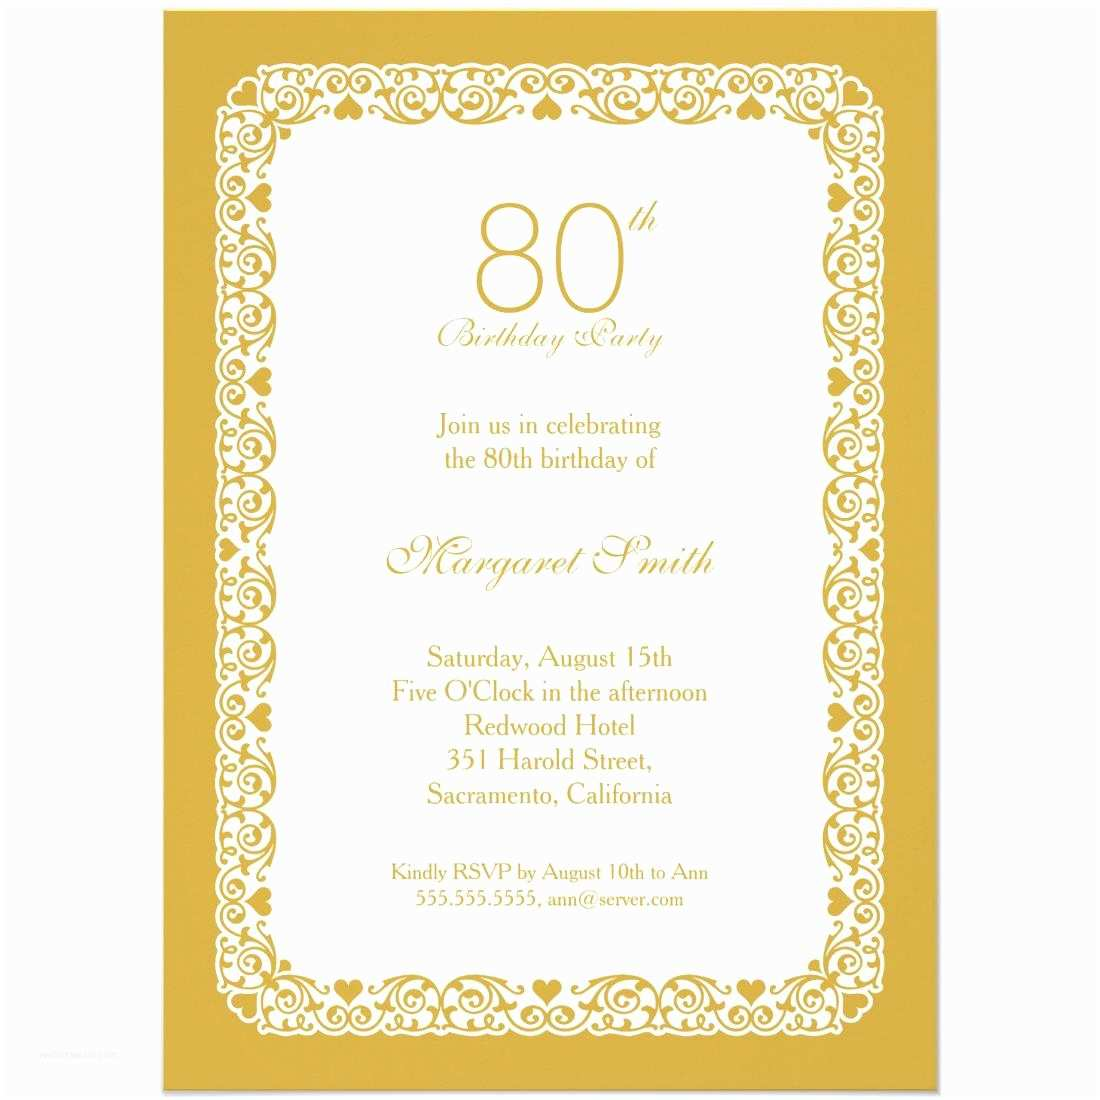 80th Birthday Invitation 15 Sample 80th Birthday Invitations Templates Ideas